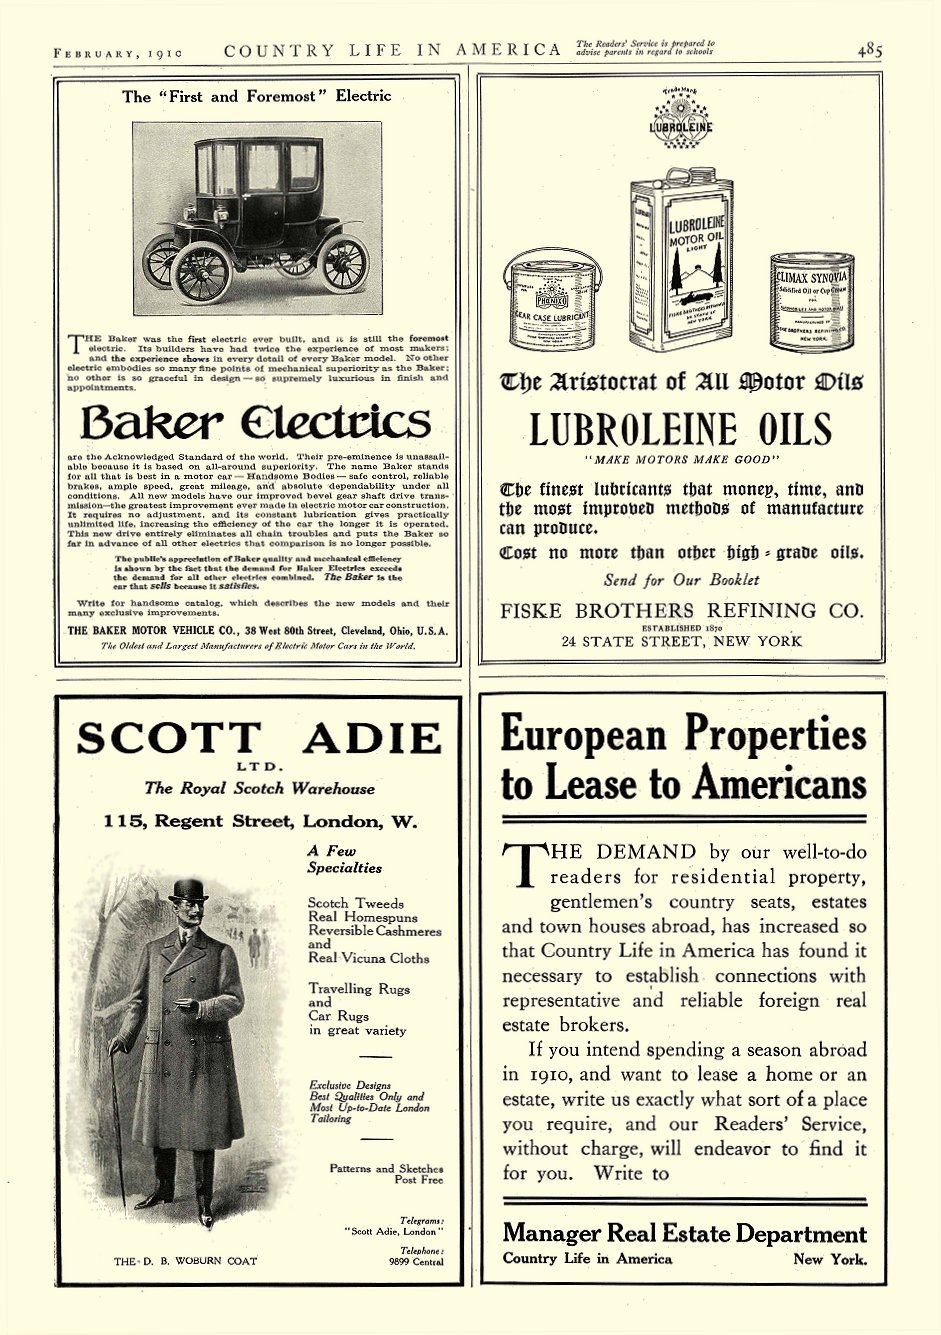 1910 2 BAKER Electric THE NEW 1909 MODEL THE BAKER MOTOR VEHICLE CO. Cleveland, OHIO COUNTRY LIFE IN AMERICA February 1910 10″x14″ page 485